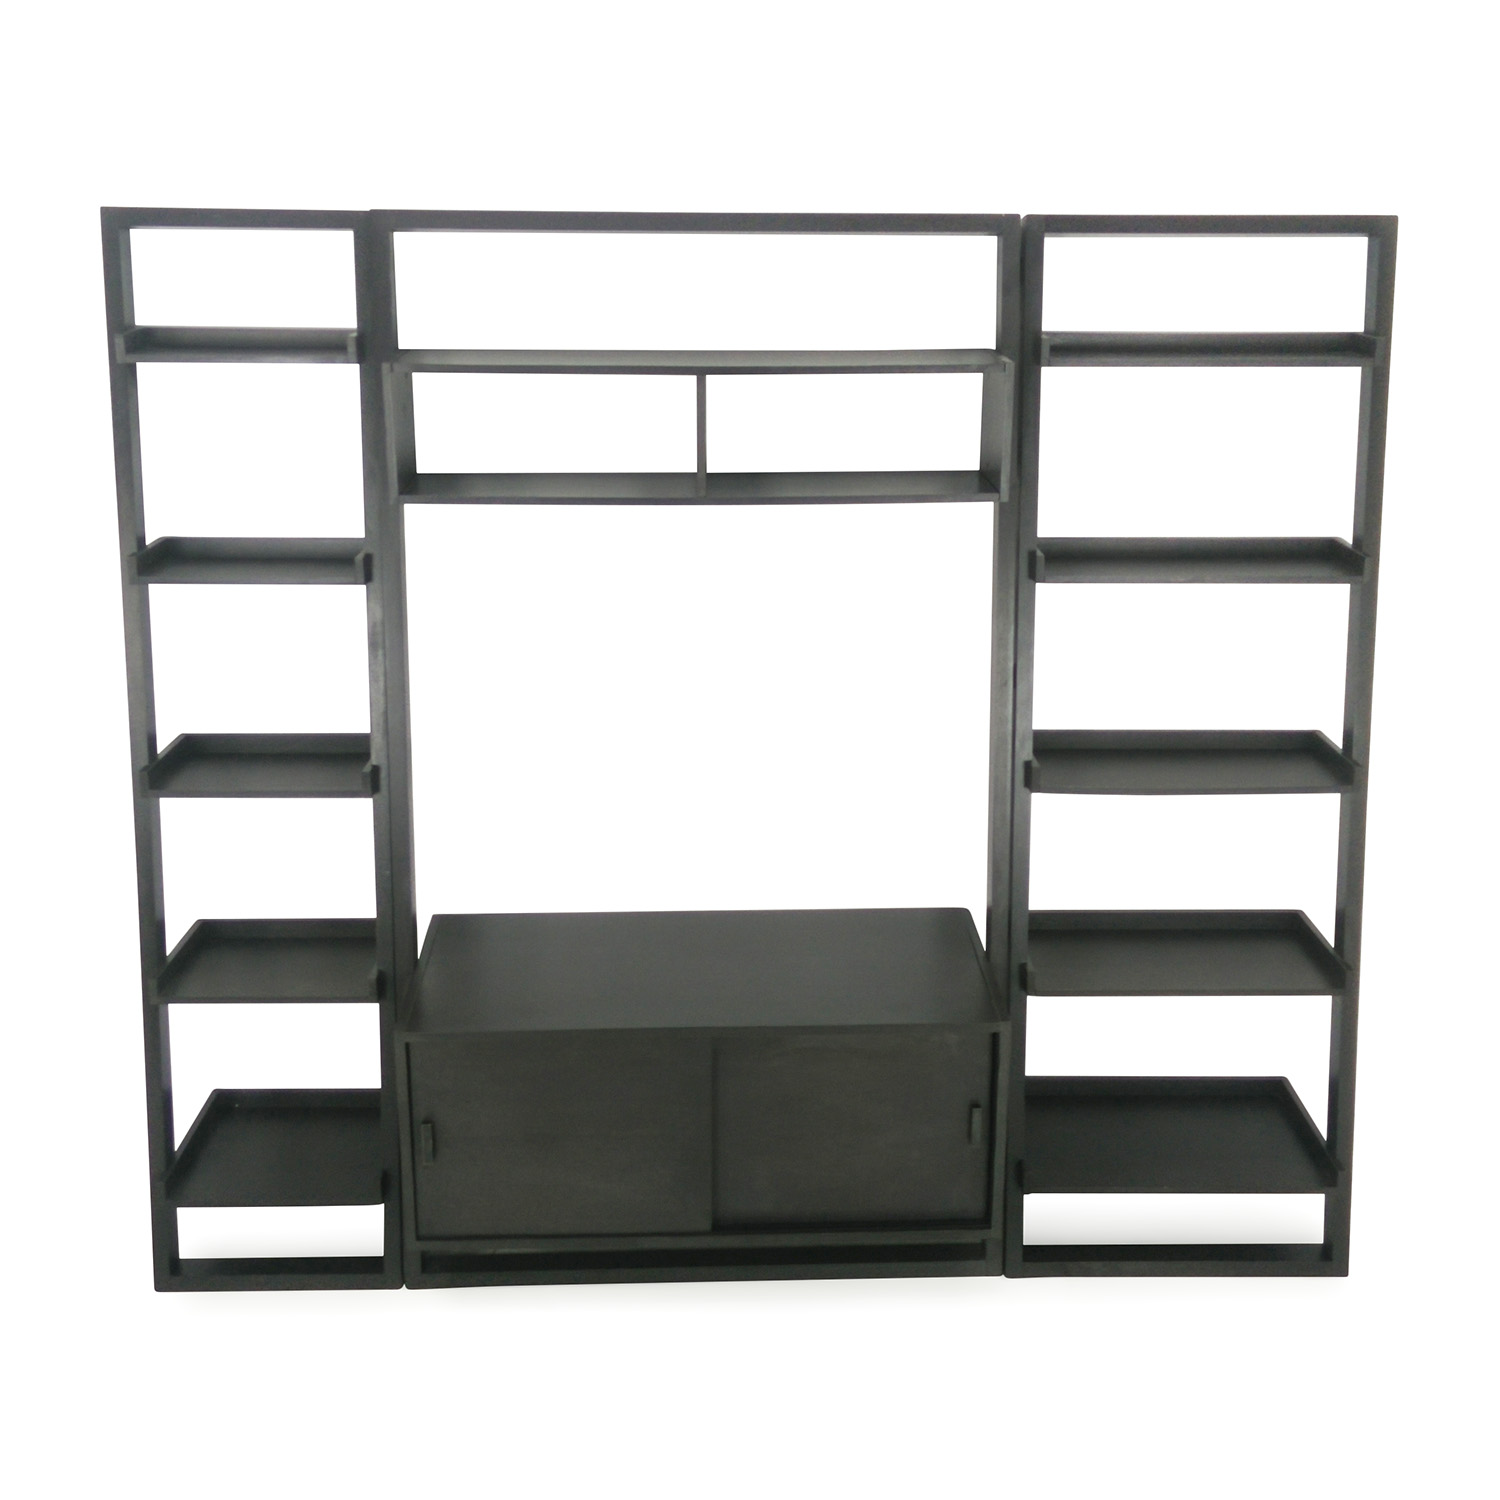 Crate and Barrel Crate and Barrel Leaning Media Stand